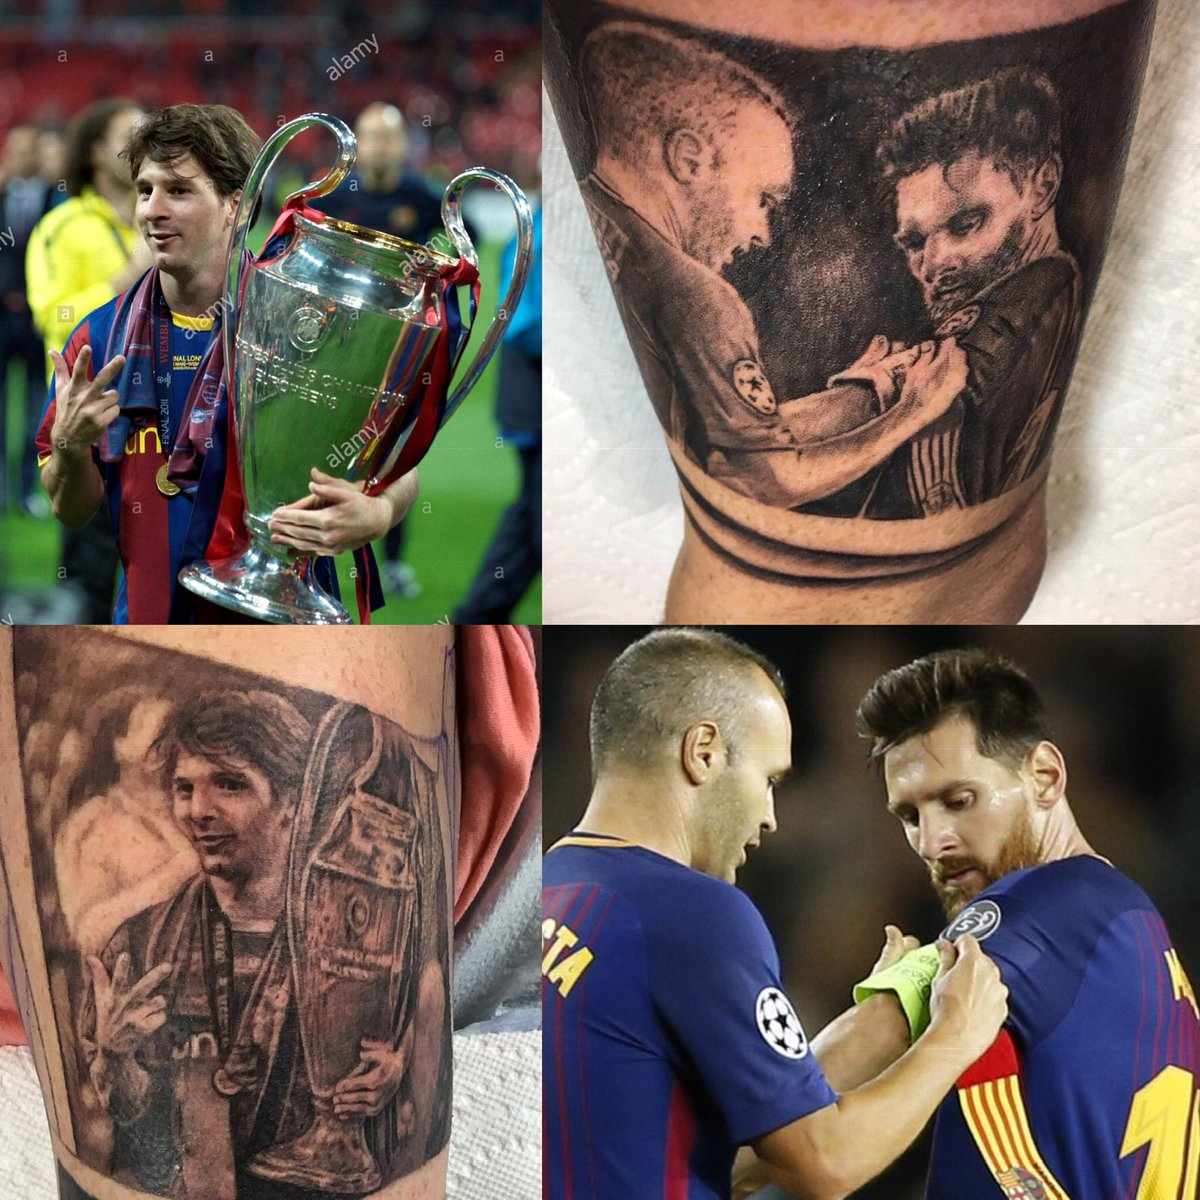 Still a bit of work to be done on the current project but I'm proud to have these works of art from @Nestor_Ace on my living gallery. He is the real talent I am just the canvas. Blaugrana for Life 🤷🏽♂️❤️💙😉😜🖼 🎨💉